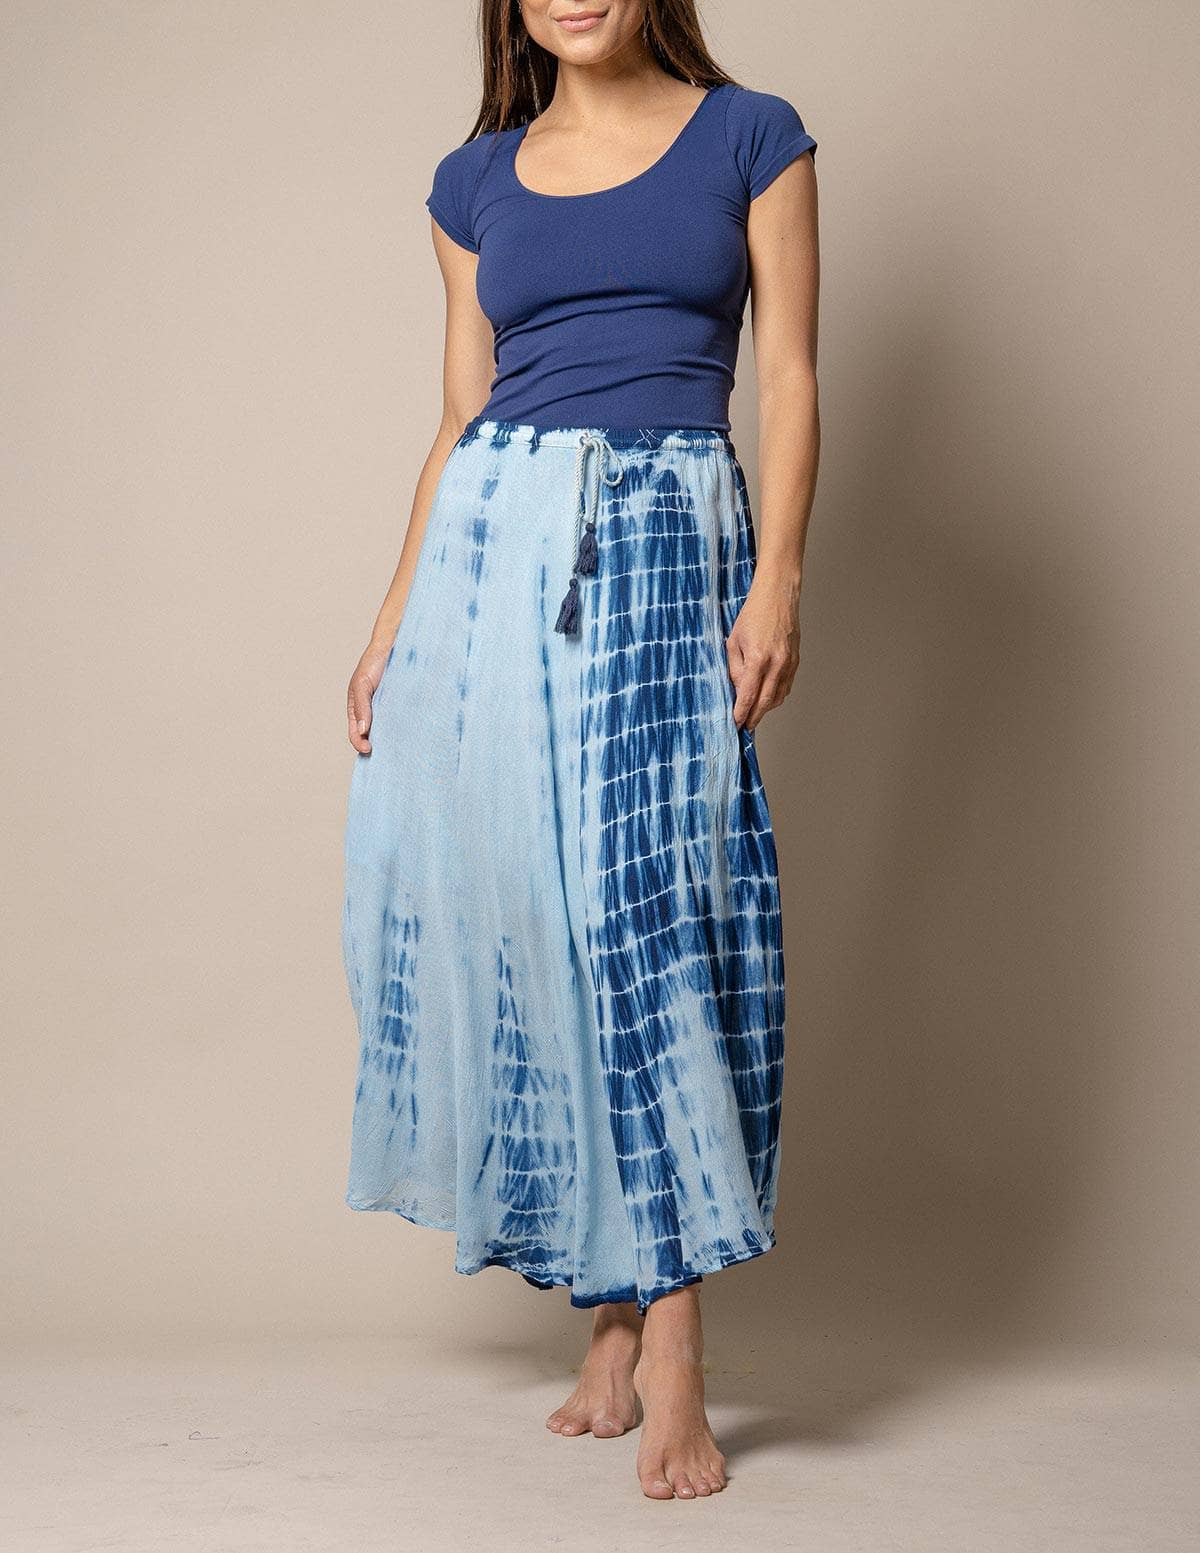 Tie-Dye Women/'s Skirt Size Large Blue Turquoise Tan Handmade with Embroidery Long Skirt